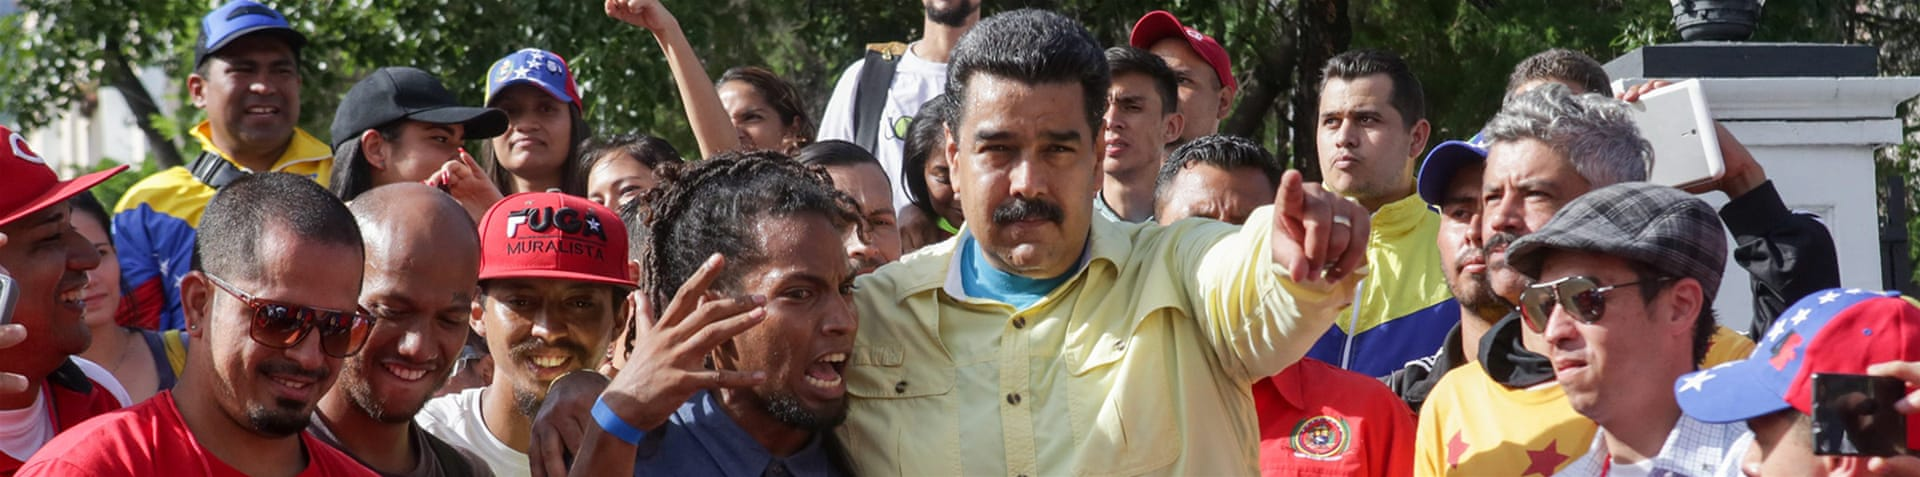 Maduro's opponents say Venezuela faces severe unrest in the referendum's absence [EPA]